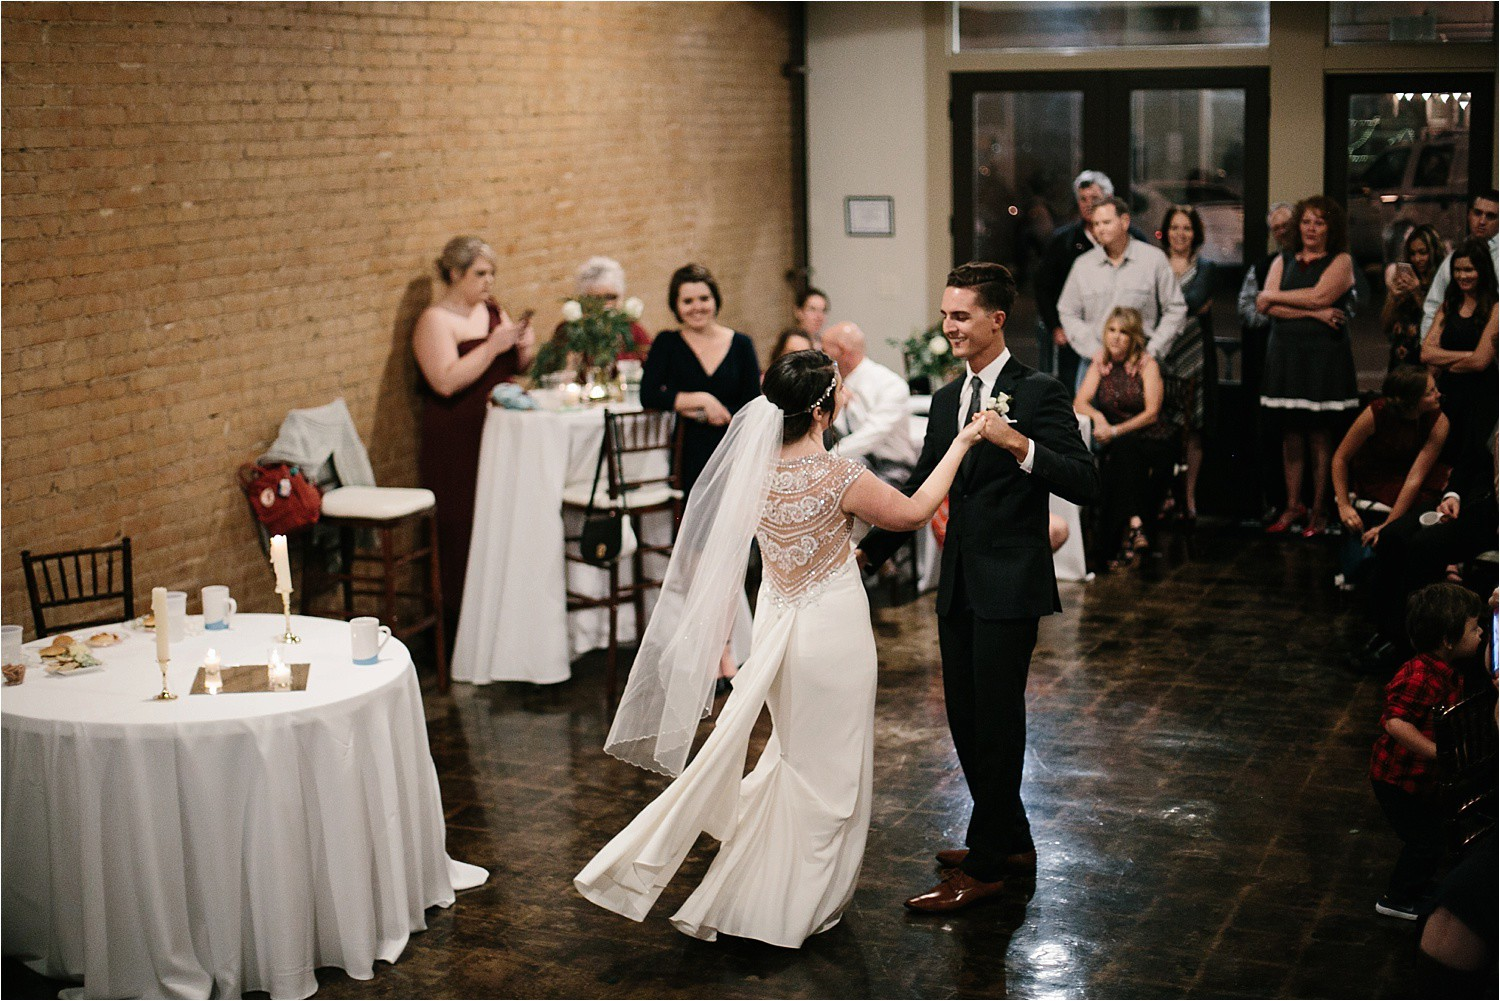 whittney-drew-__-an-intimate-wine-and-navy-wedding-in-an-industrial-venue-at-loft-123-in-paris-tx-by-north-texas-wedding-photographer-rachel-meagan-photography-_-093